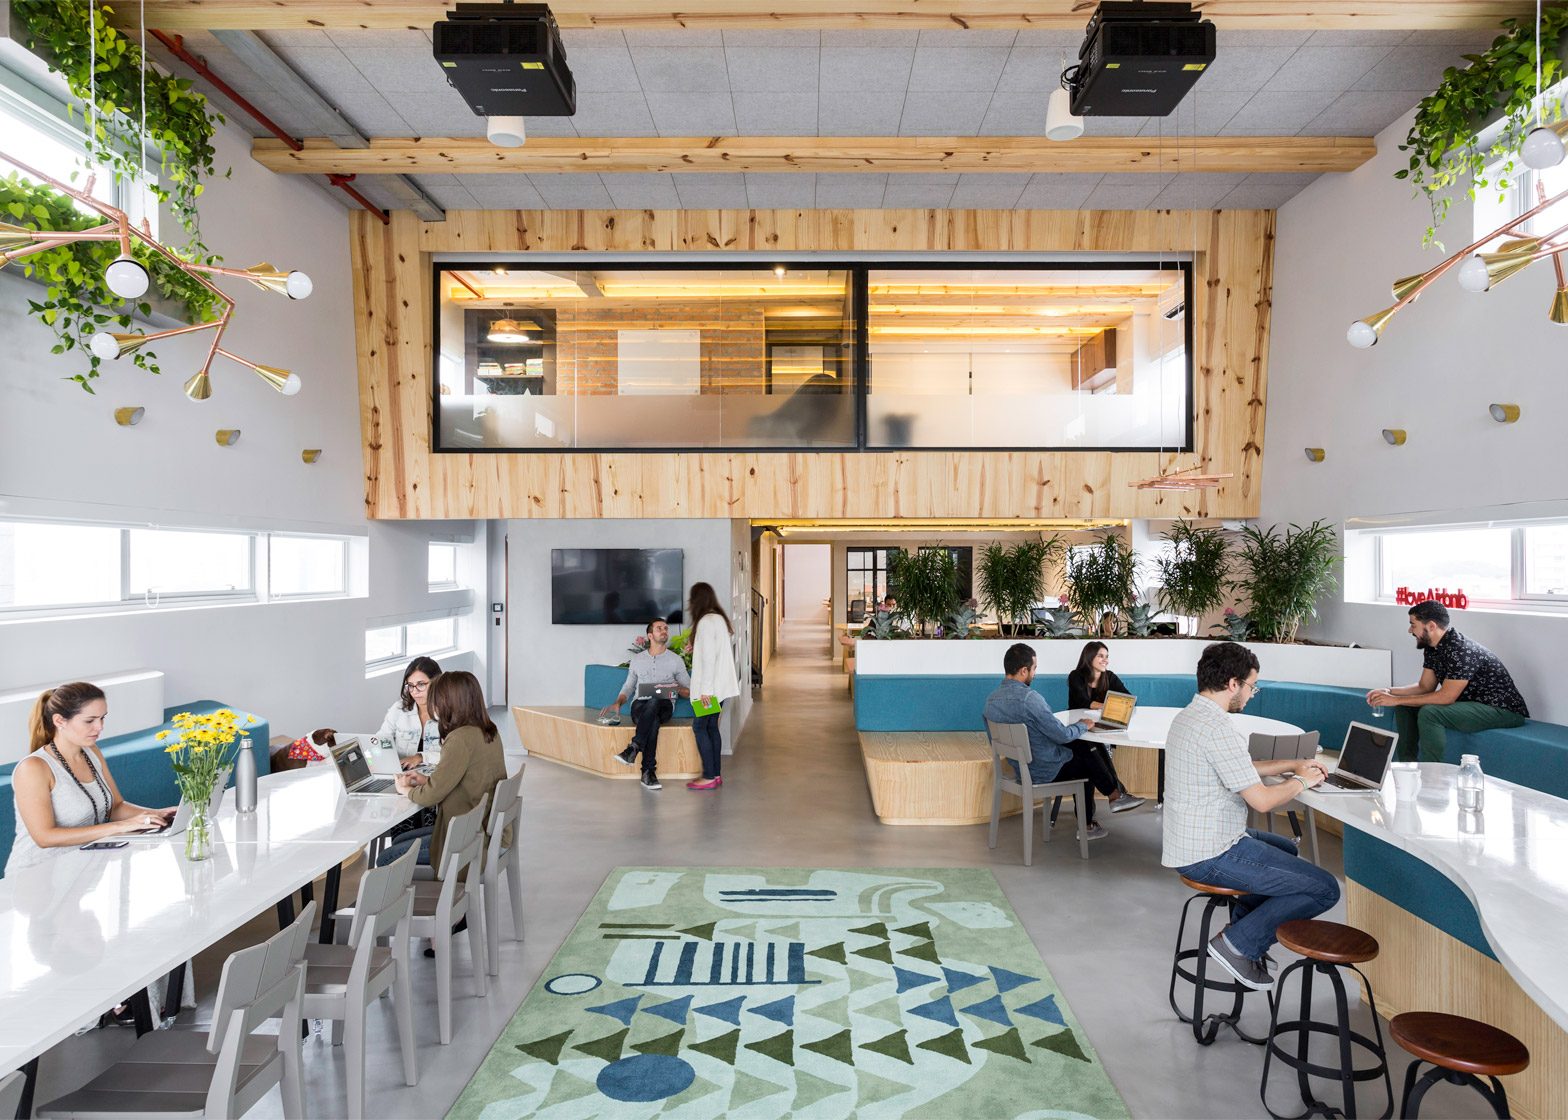 airbnb-offices_sao-paulo_mm18_dezeen_1568_7